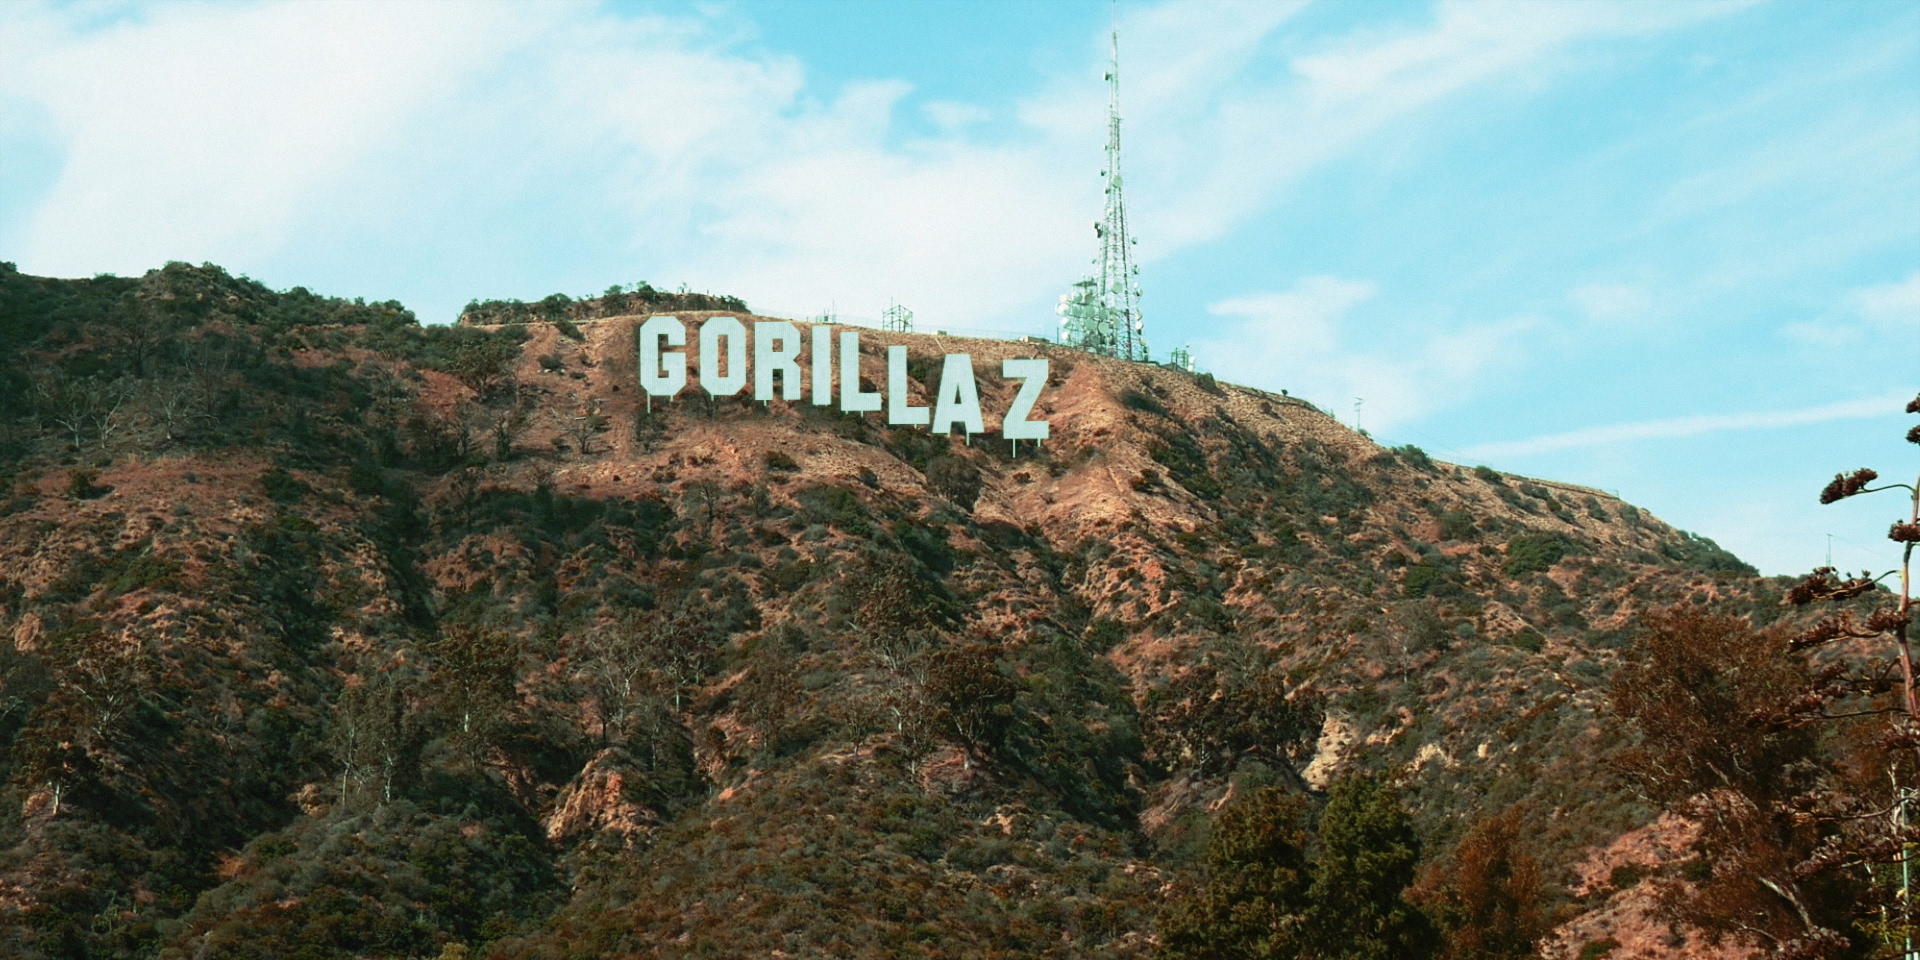 Gorillaz_HollyWood_Delivery (0-04-47-11).jpg